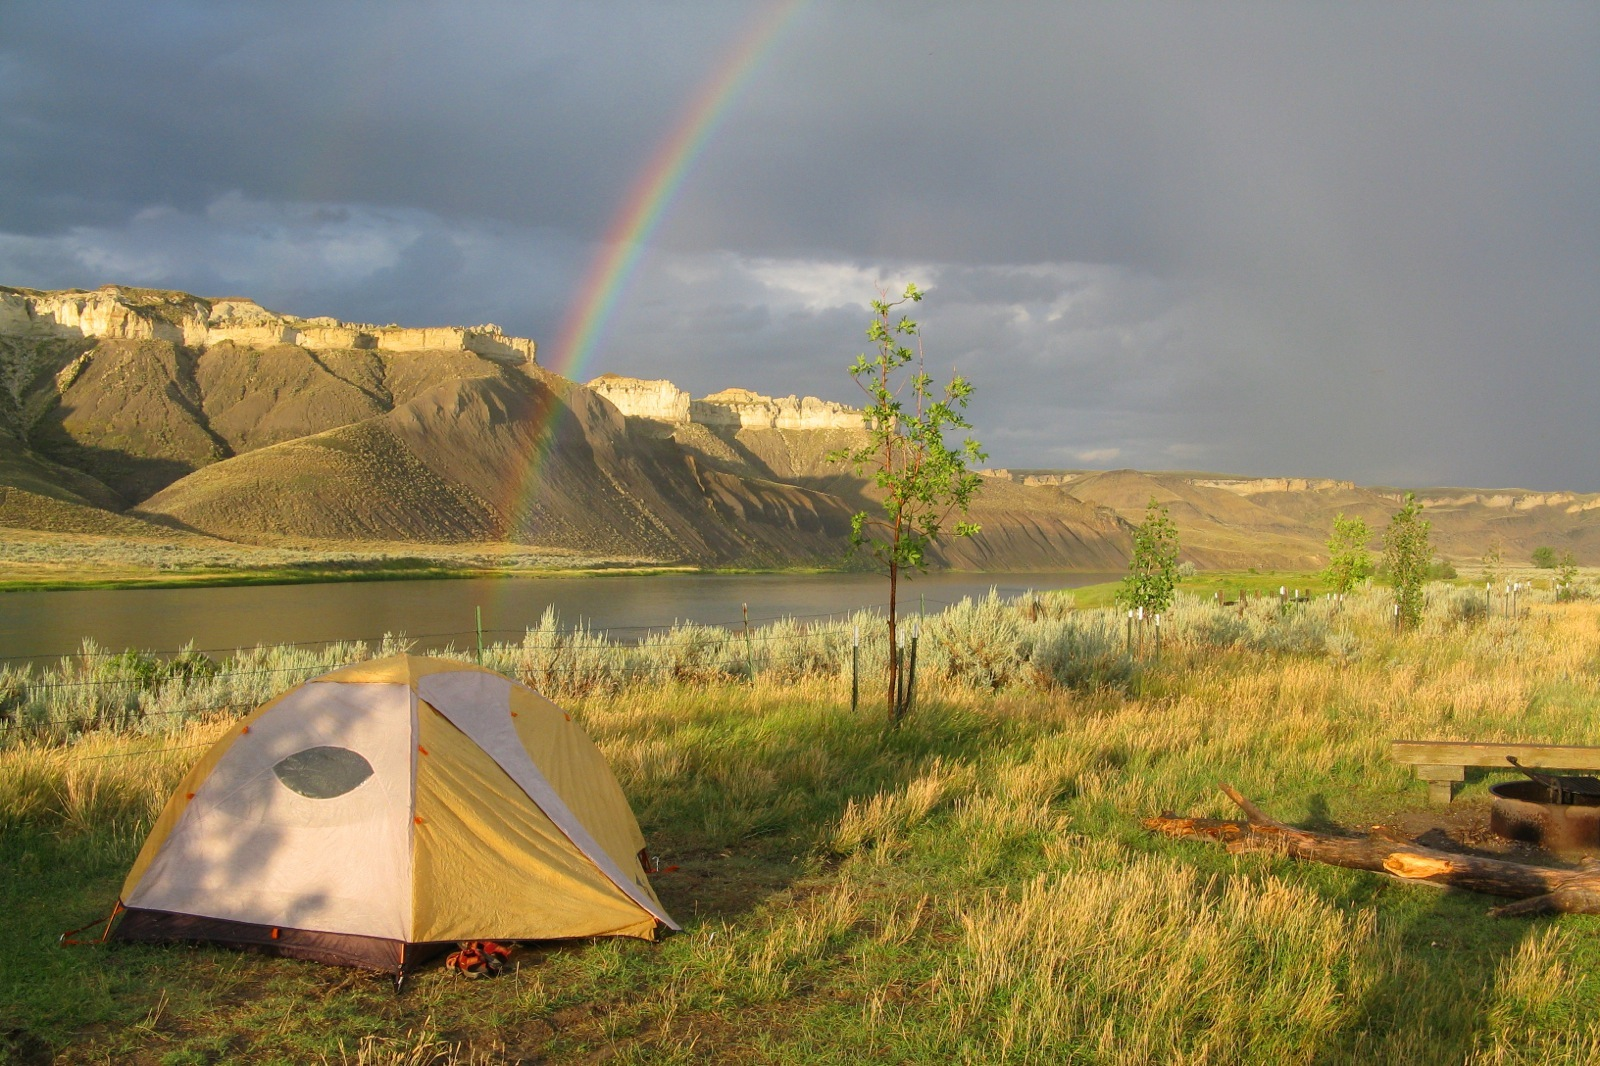 Under gray skies, a rainbow arches over the Missouri River and our campsite near Slaughter River.